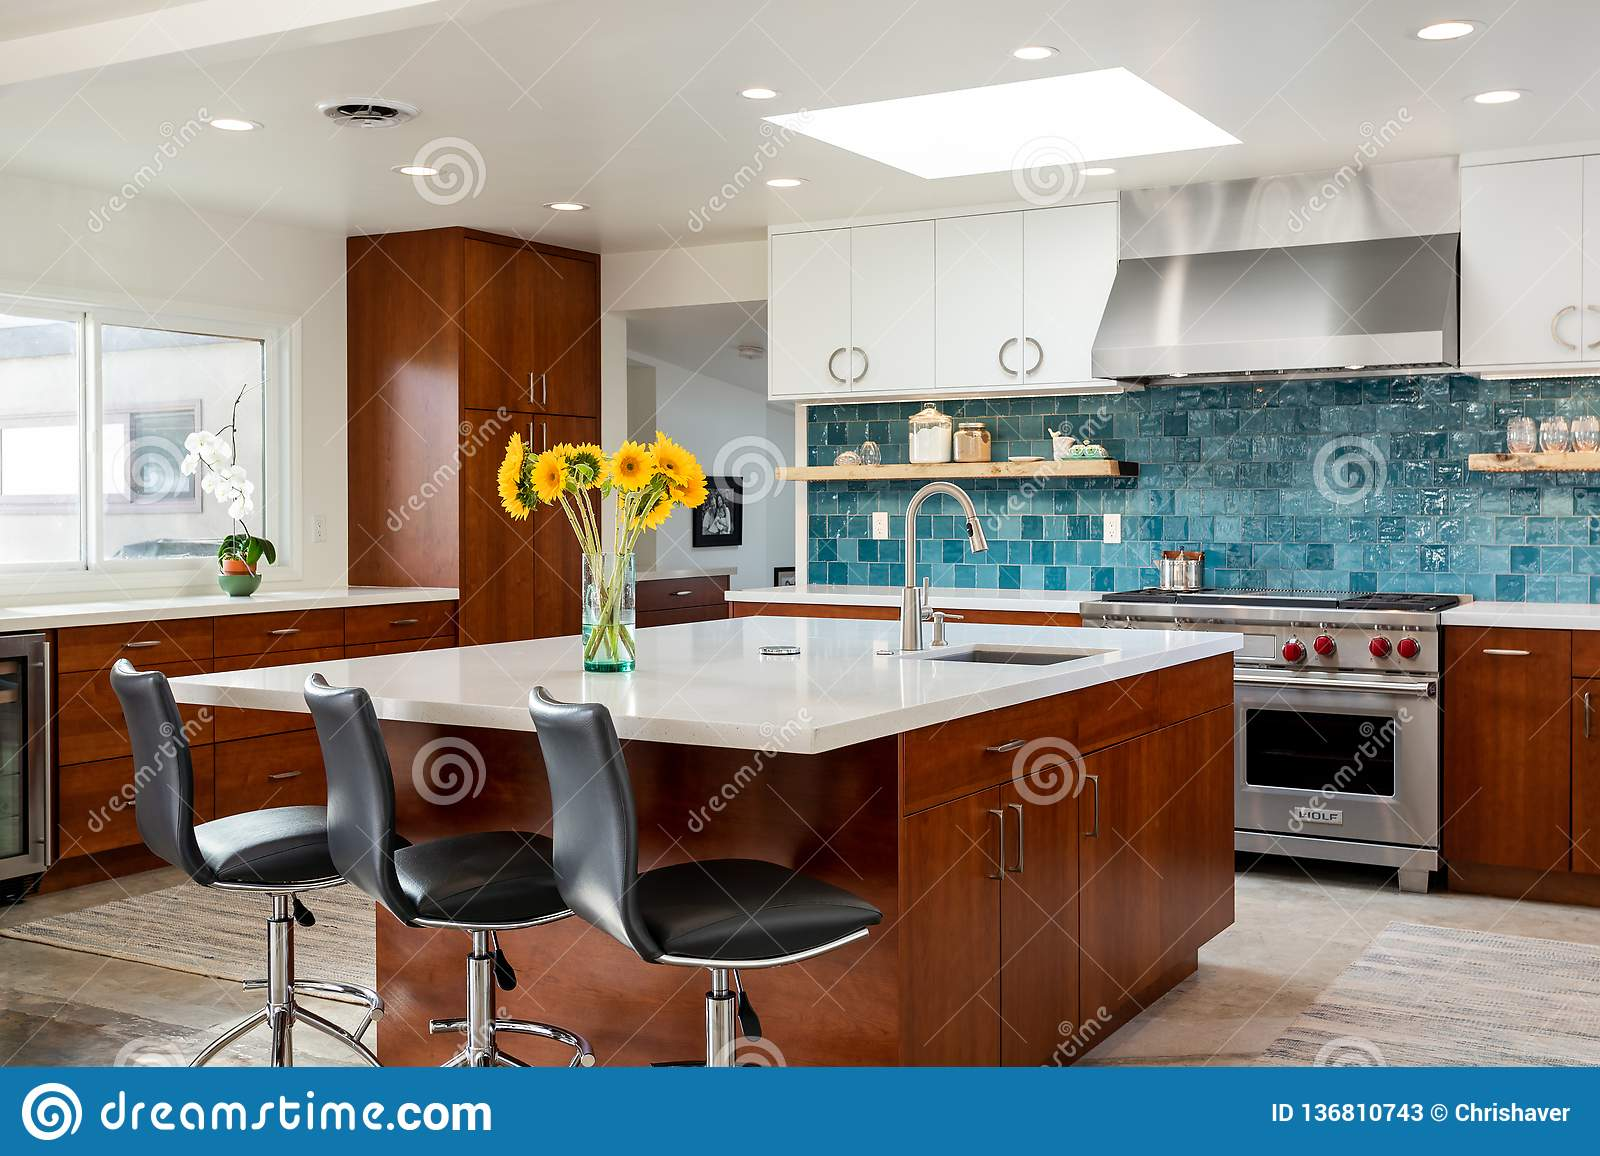 Modern Home Design Kitchen Island Home Interiors Editorial Stock Photo Image Of Fancy House 136810743